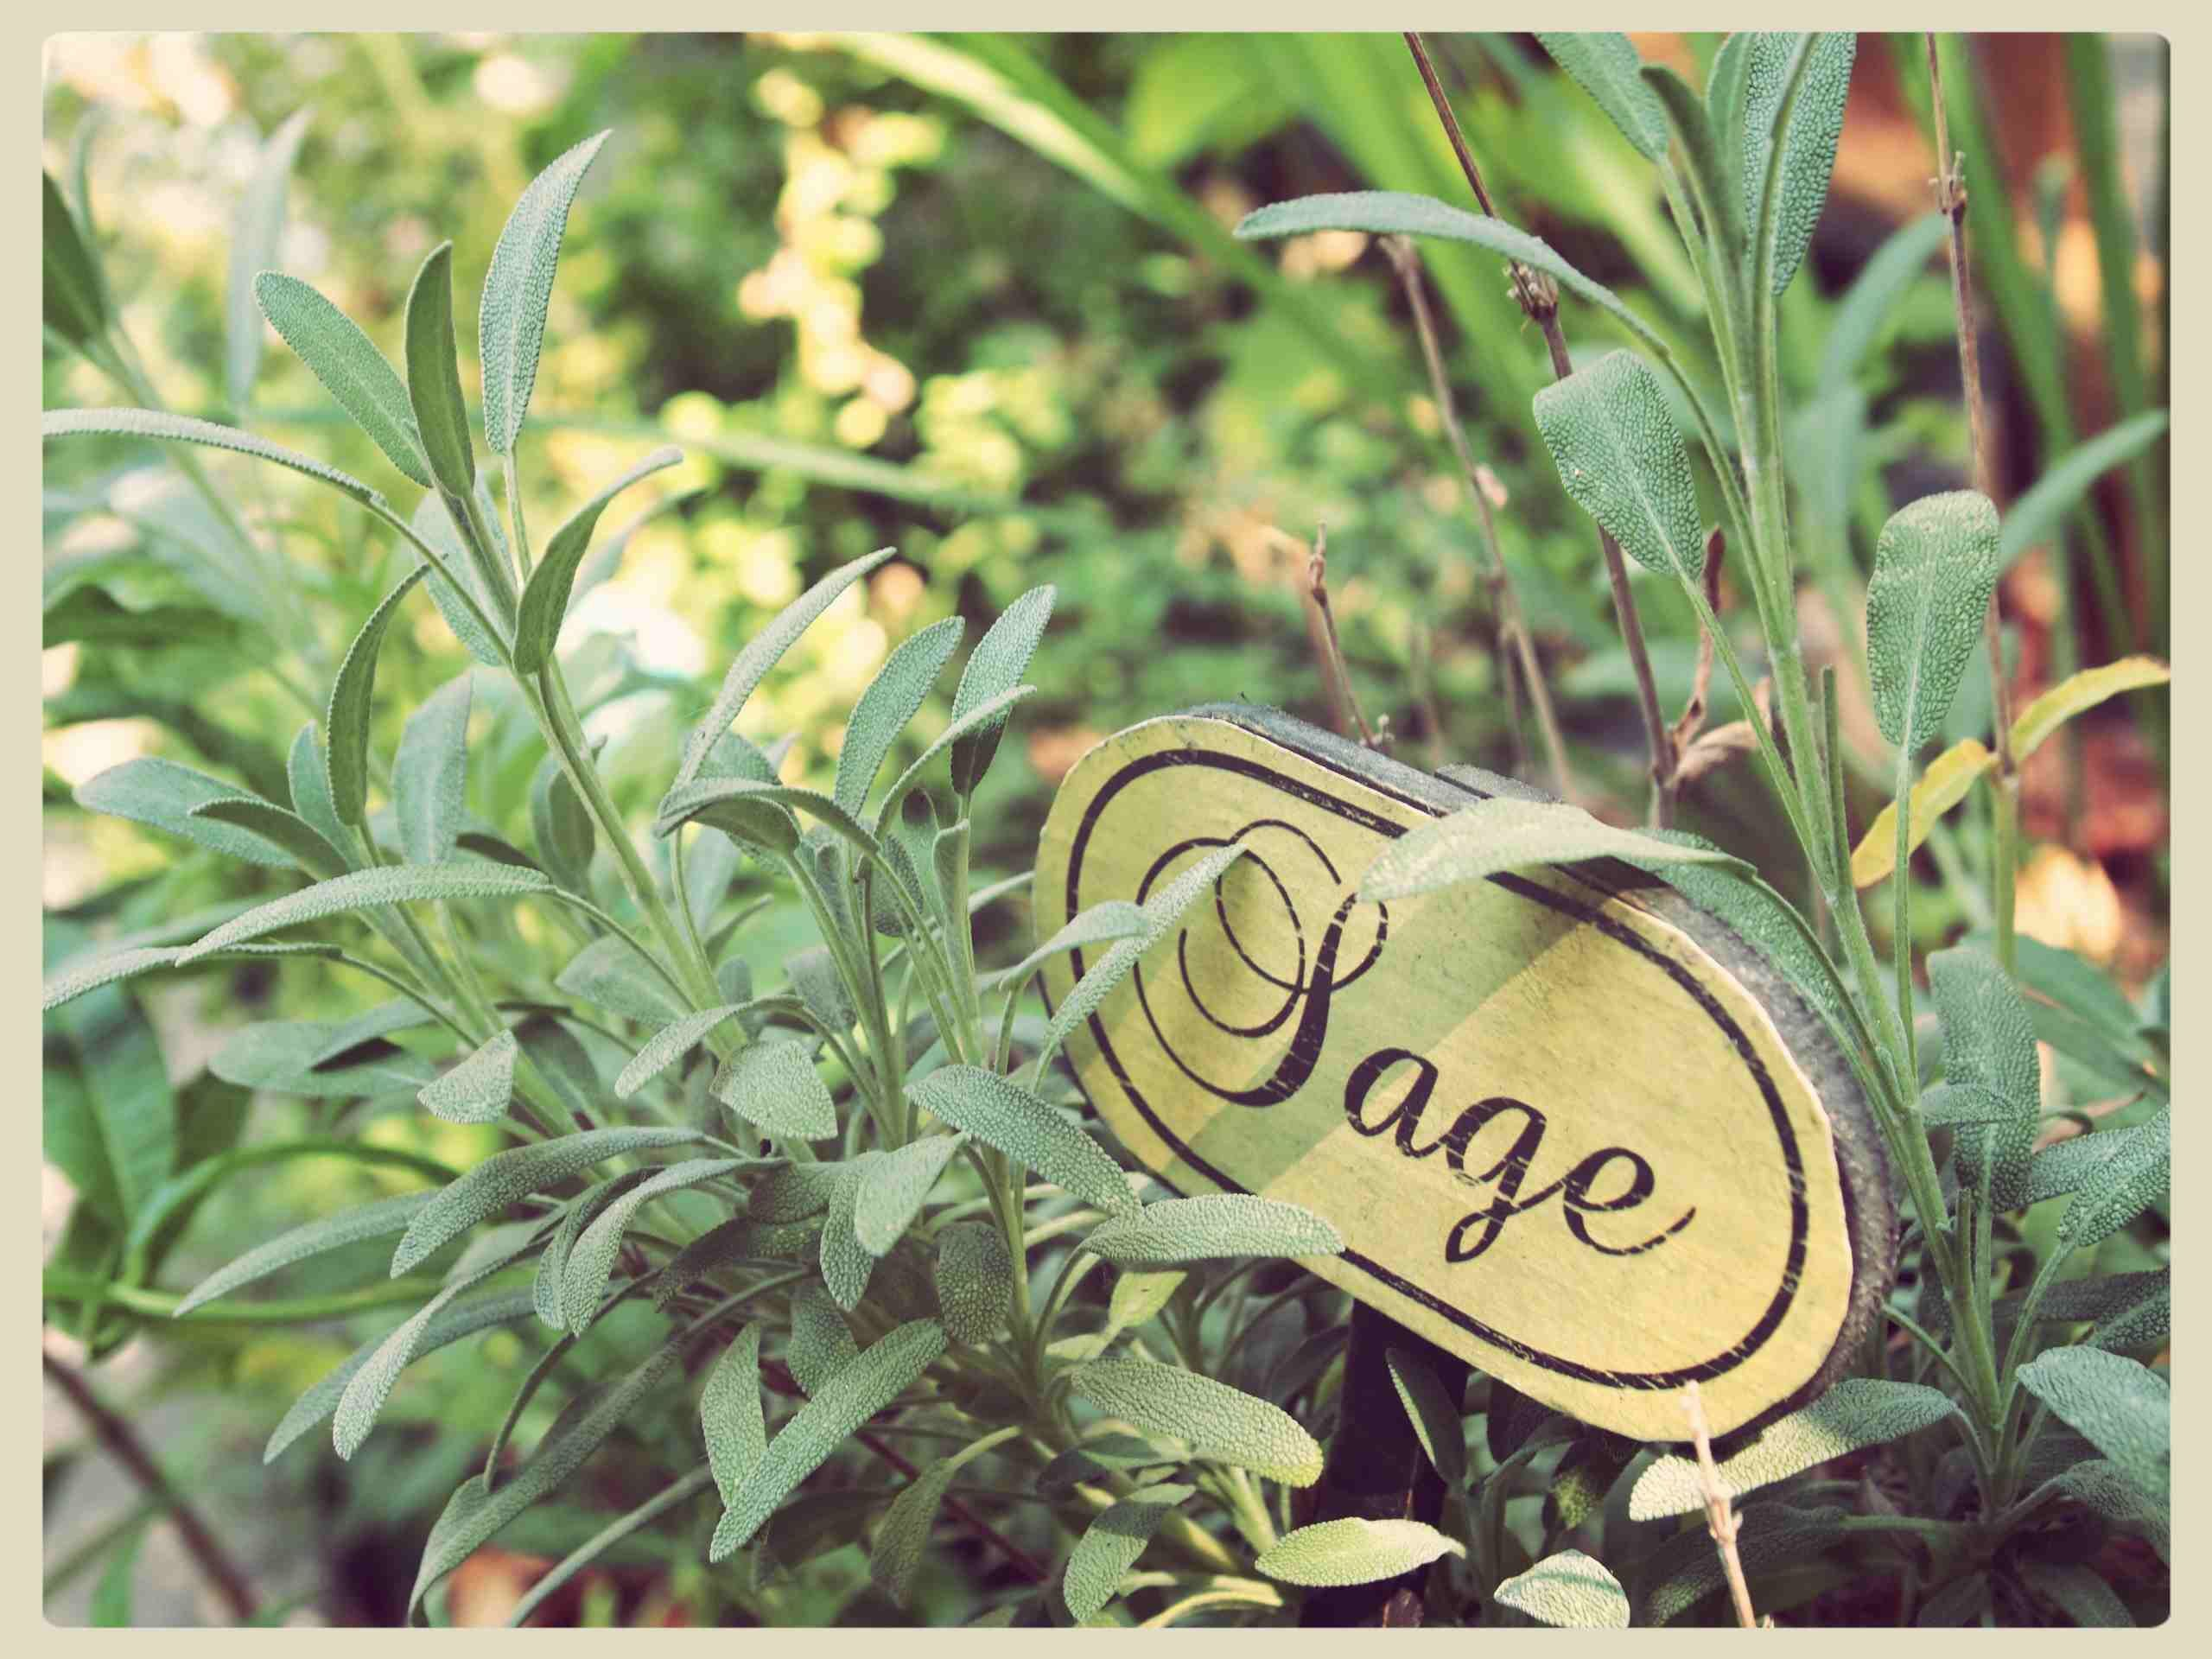 Sage leaf or salvia officinalis (sage) has many health and beauty benefits. It's a grayish, green leaf native in Mediterranean region. The plant sage or 'salvia' in Latin means 'to save' because of its healing properties. The sage leaves are made by crushing it and put in a boiling water to treat asthmatic or nasal